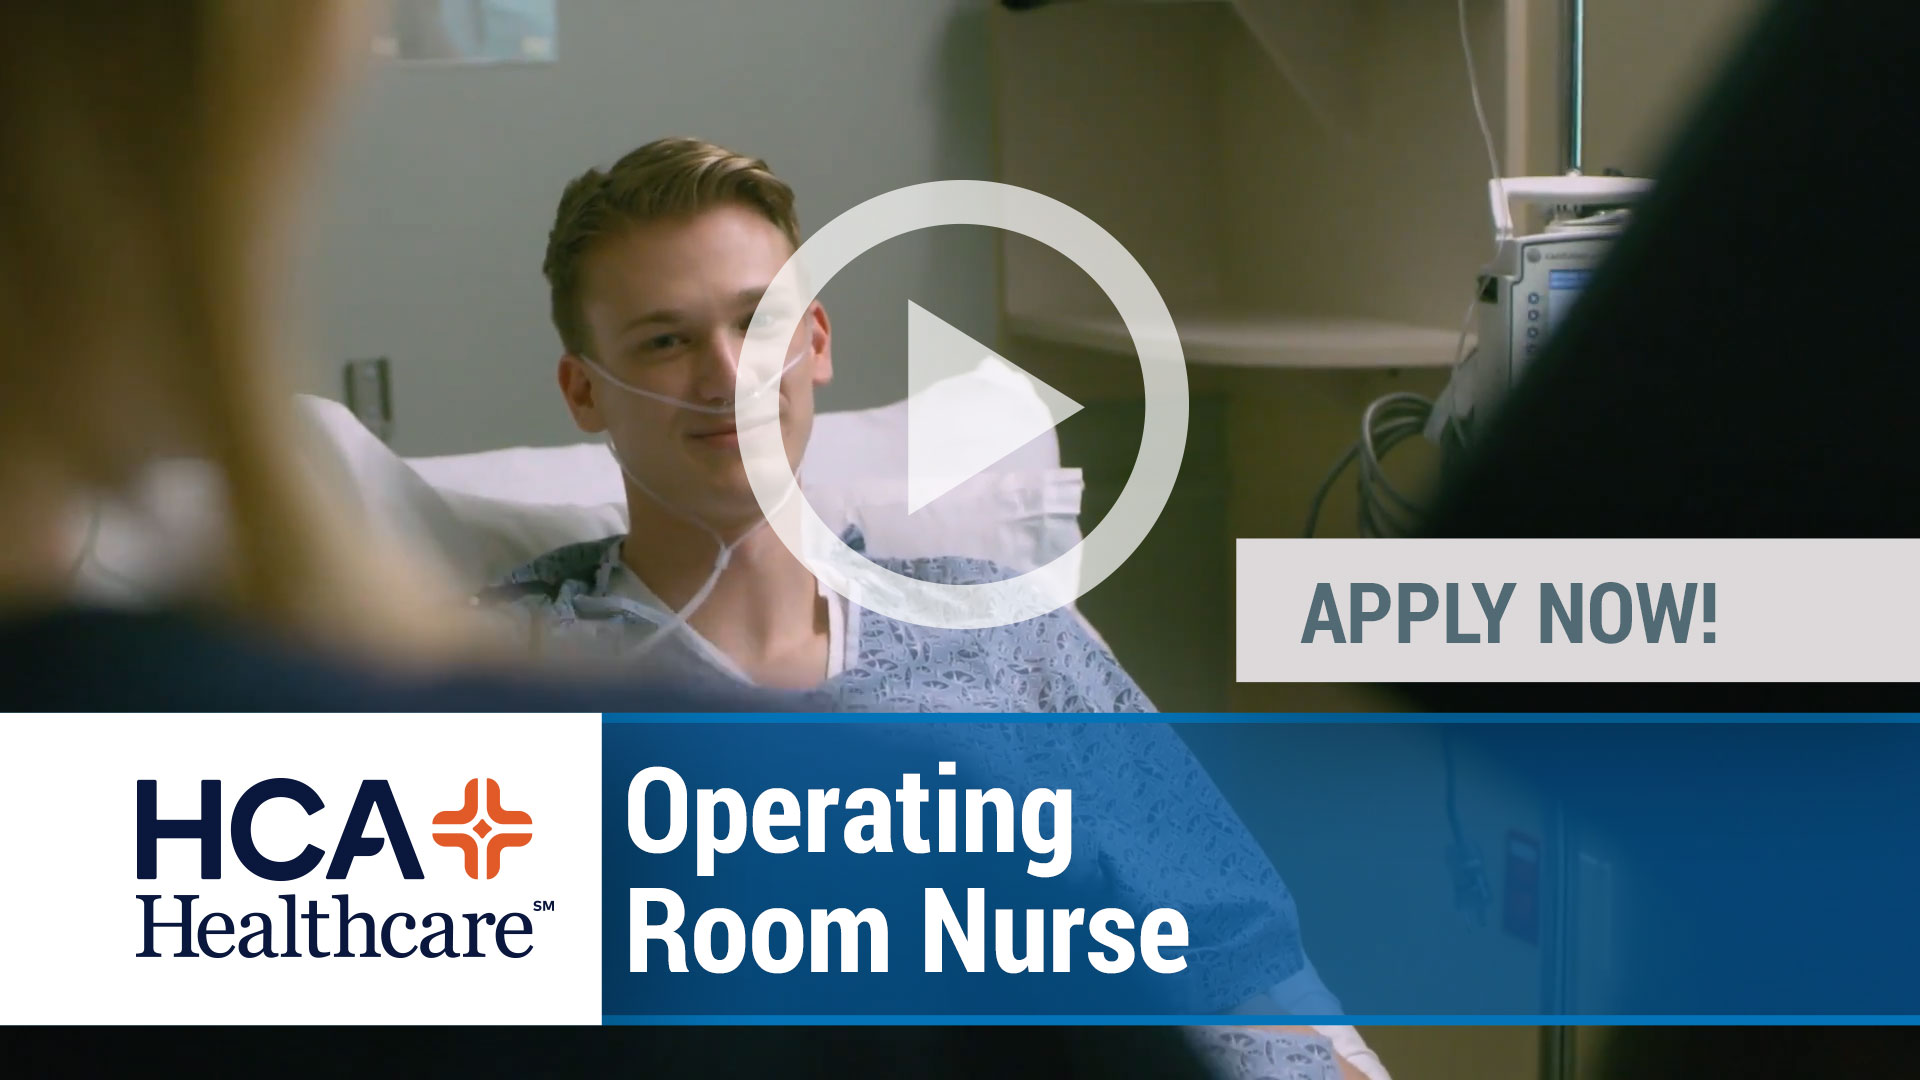 Watch our careers video for available job opening Operating Room Nurse in Houston, Texas